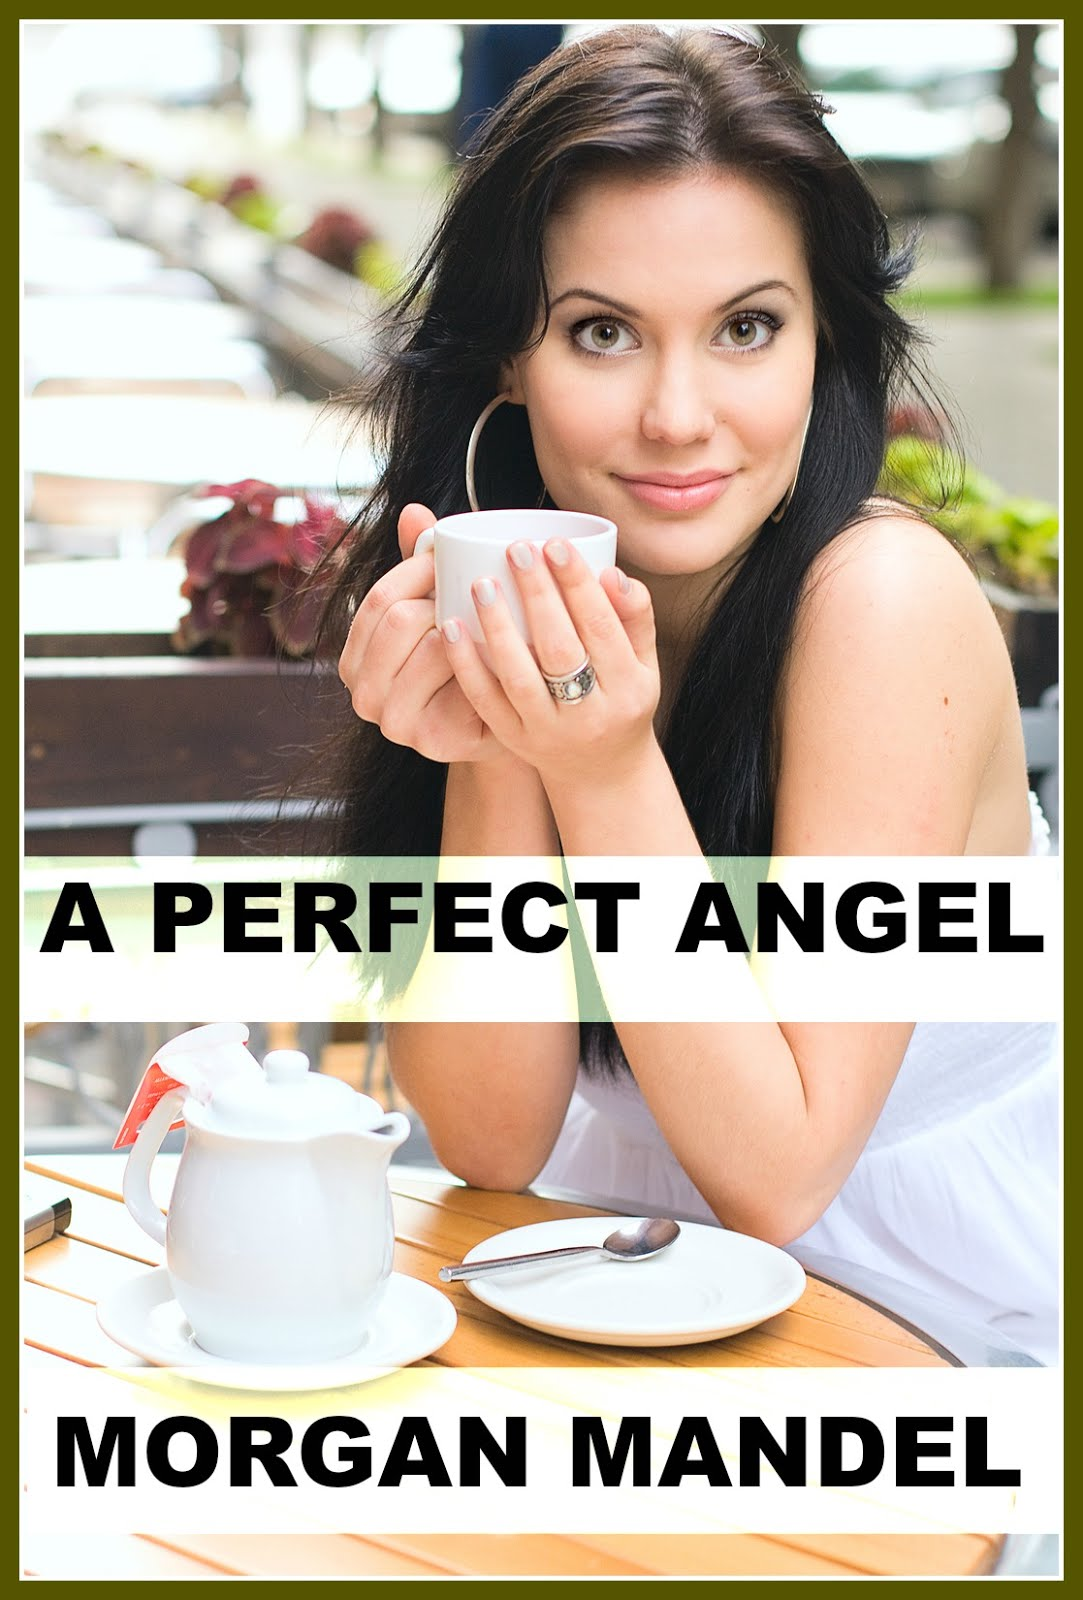 A PERFECT ANGEL BY MORGAN MANDEL